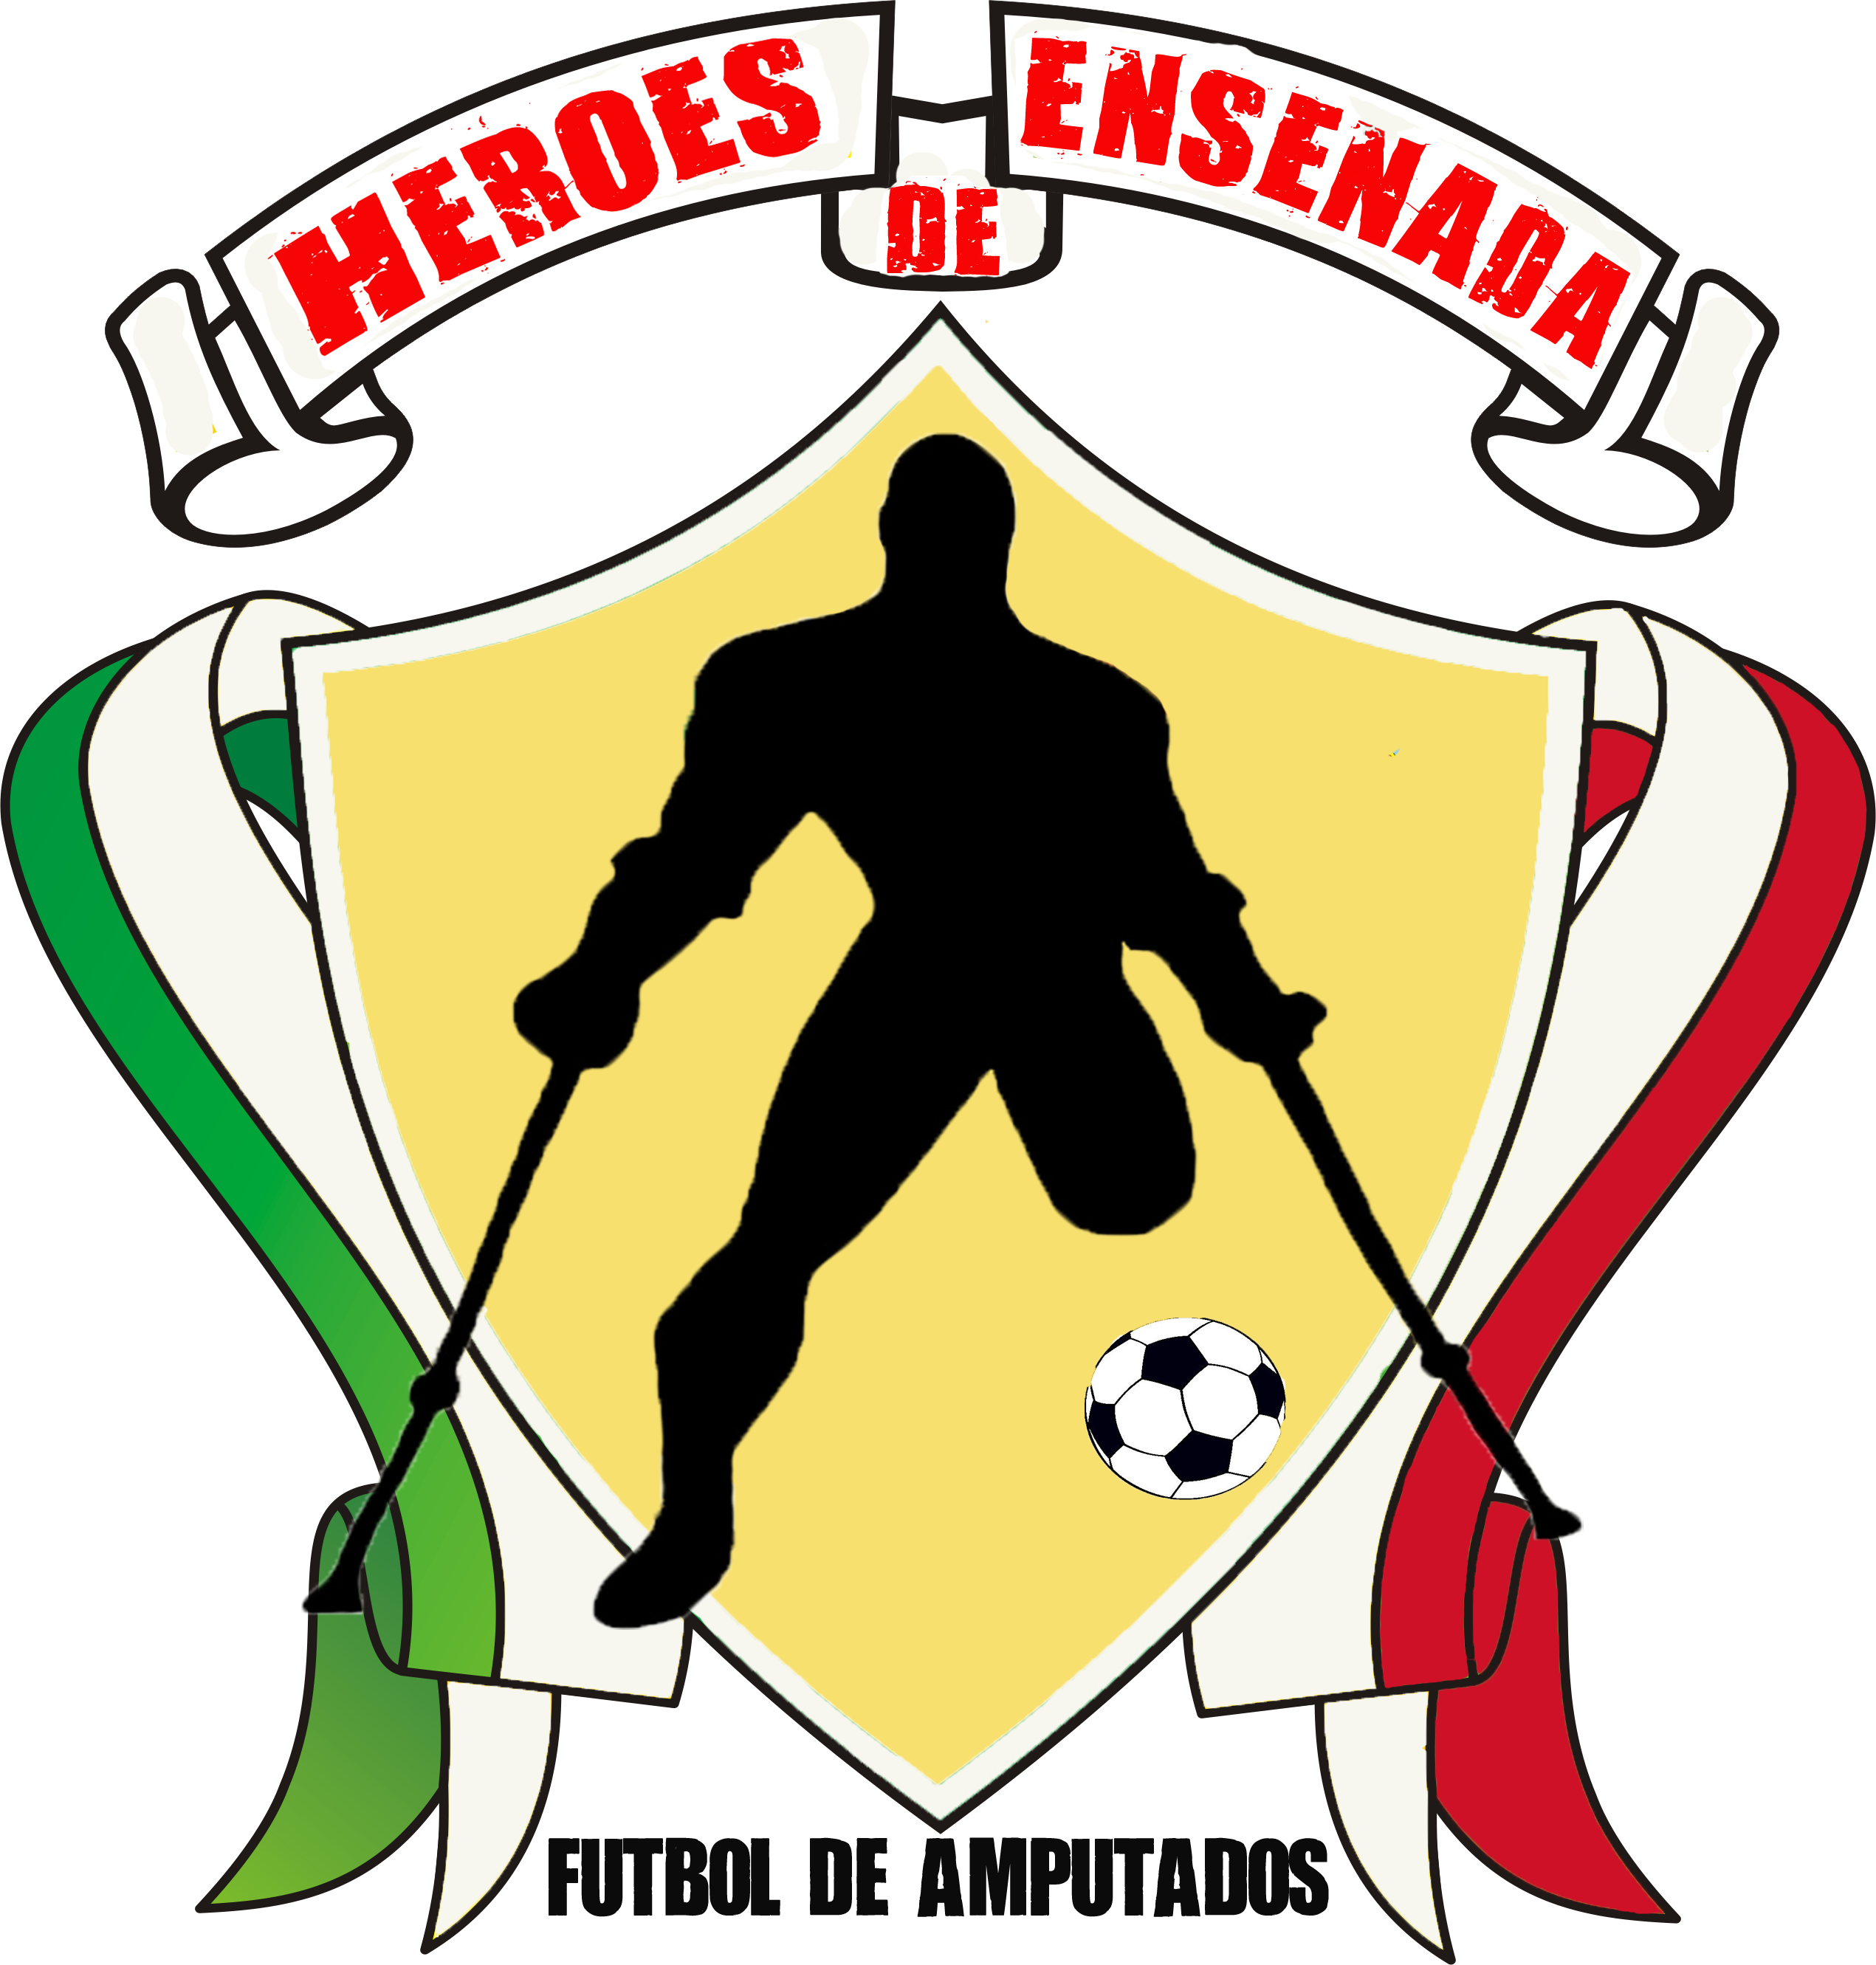 Hero clipart hero medal. First medals of mexico